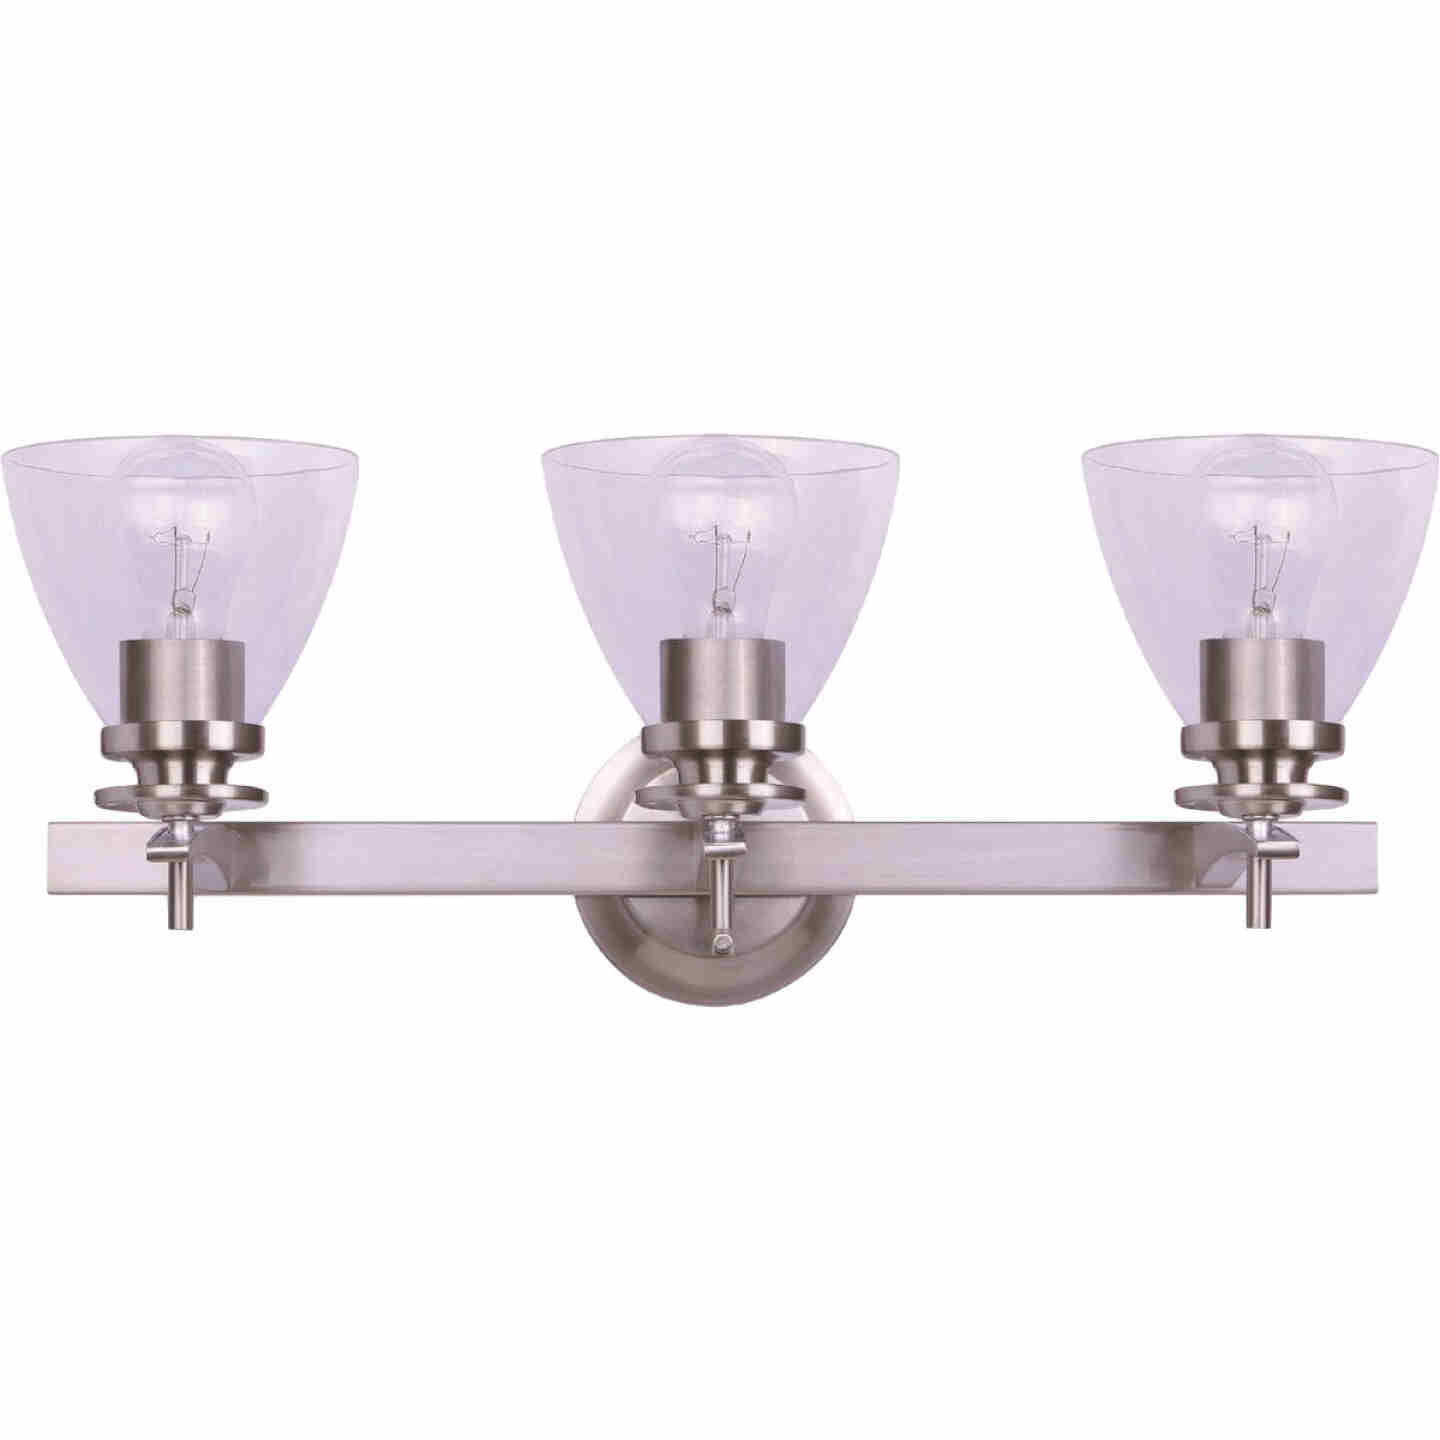 Home Impressions 3-Bulb Brushed Nickel Vanity Bath Light Fixture, Clear Glass Image 1